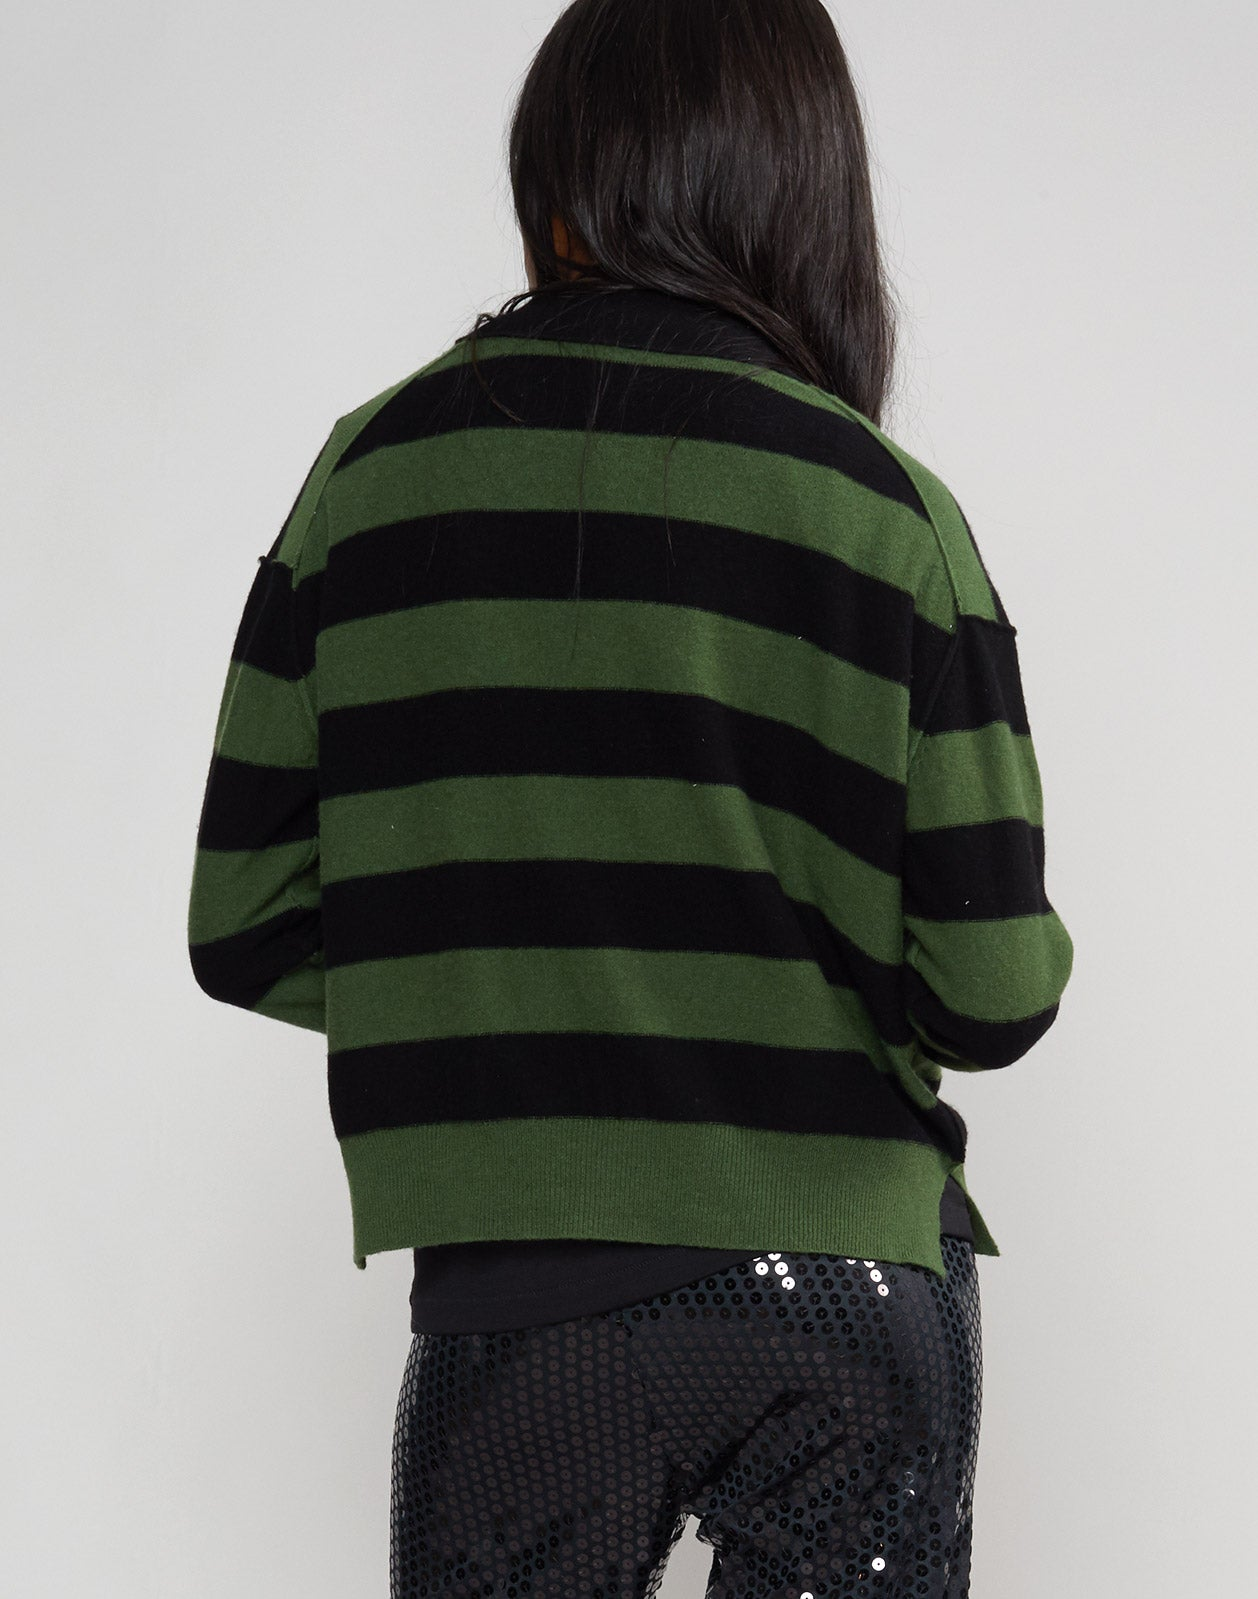 Back view of the striped Monroe sweater.